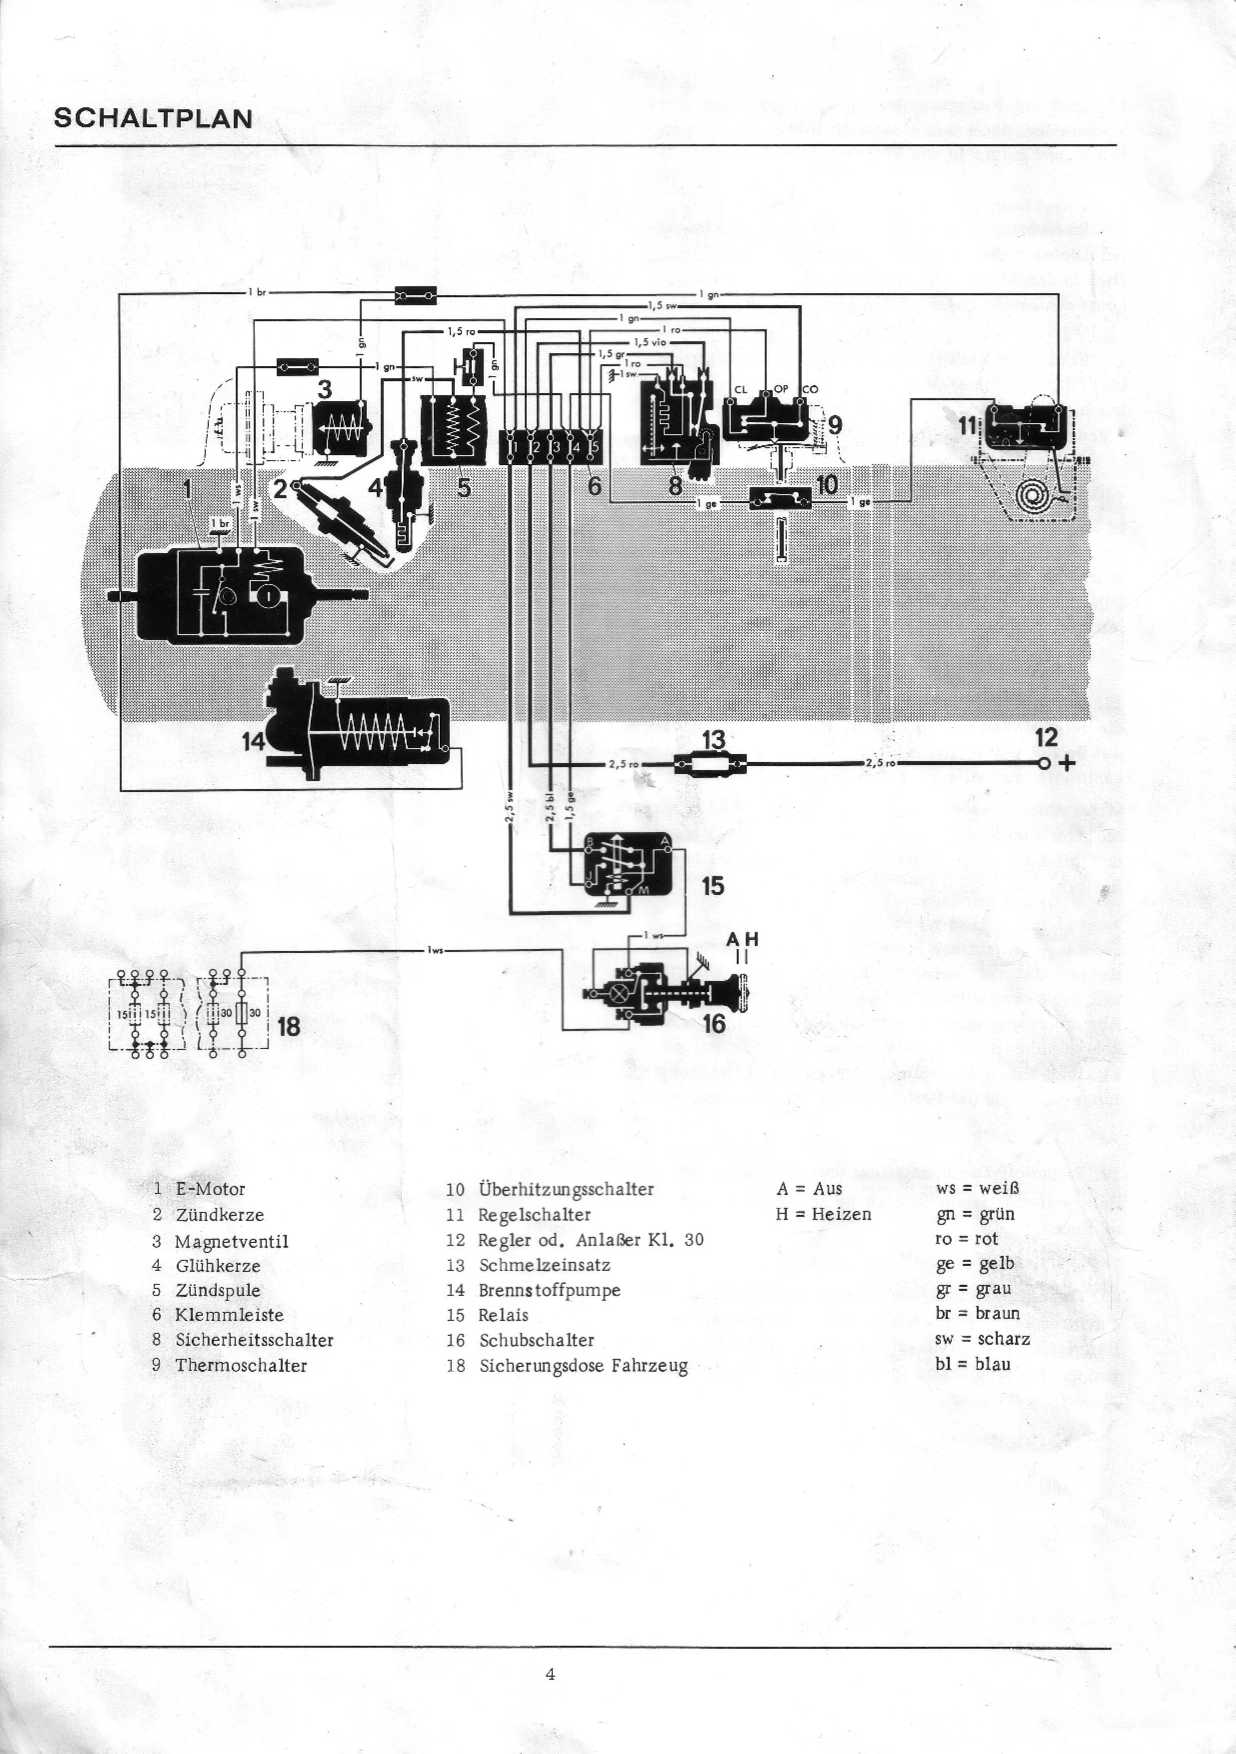 1970 10 eberspaecher bn4 wiring diagram?resize\=665%2C944 1970 mach 1 wiring diagram 1970 mach 1 exhaust, 1970 mach 1 door 1970 ford mustang wiring diagram at mifinder.co